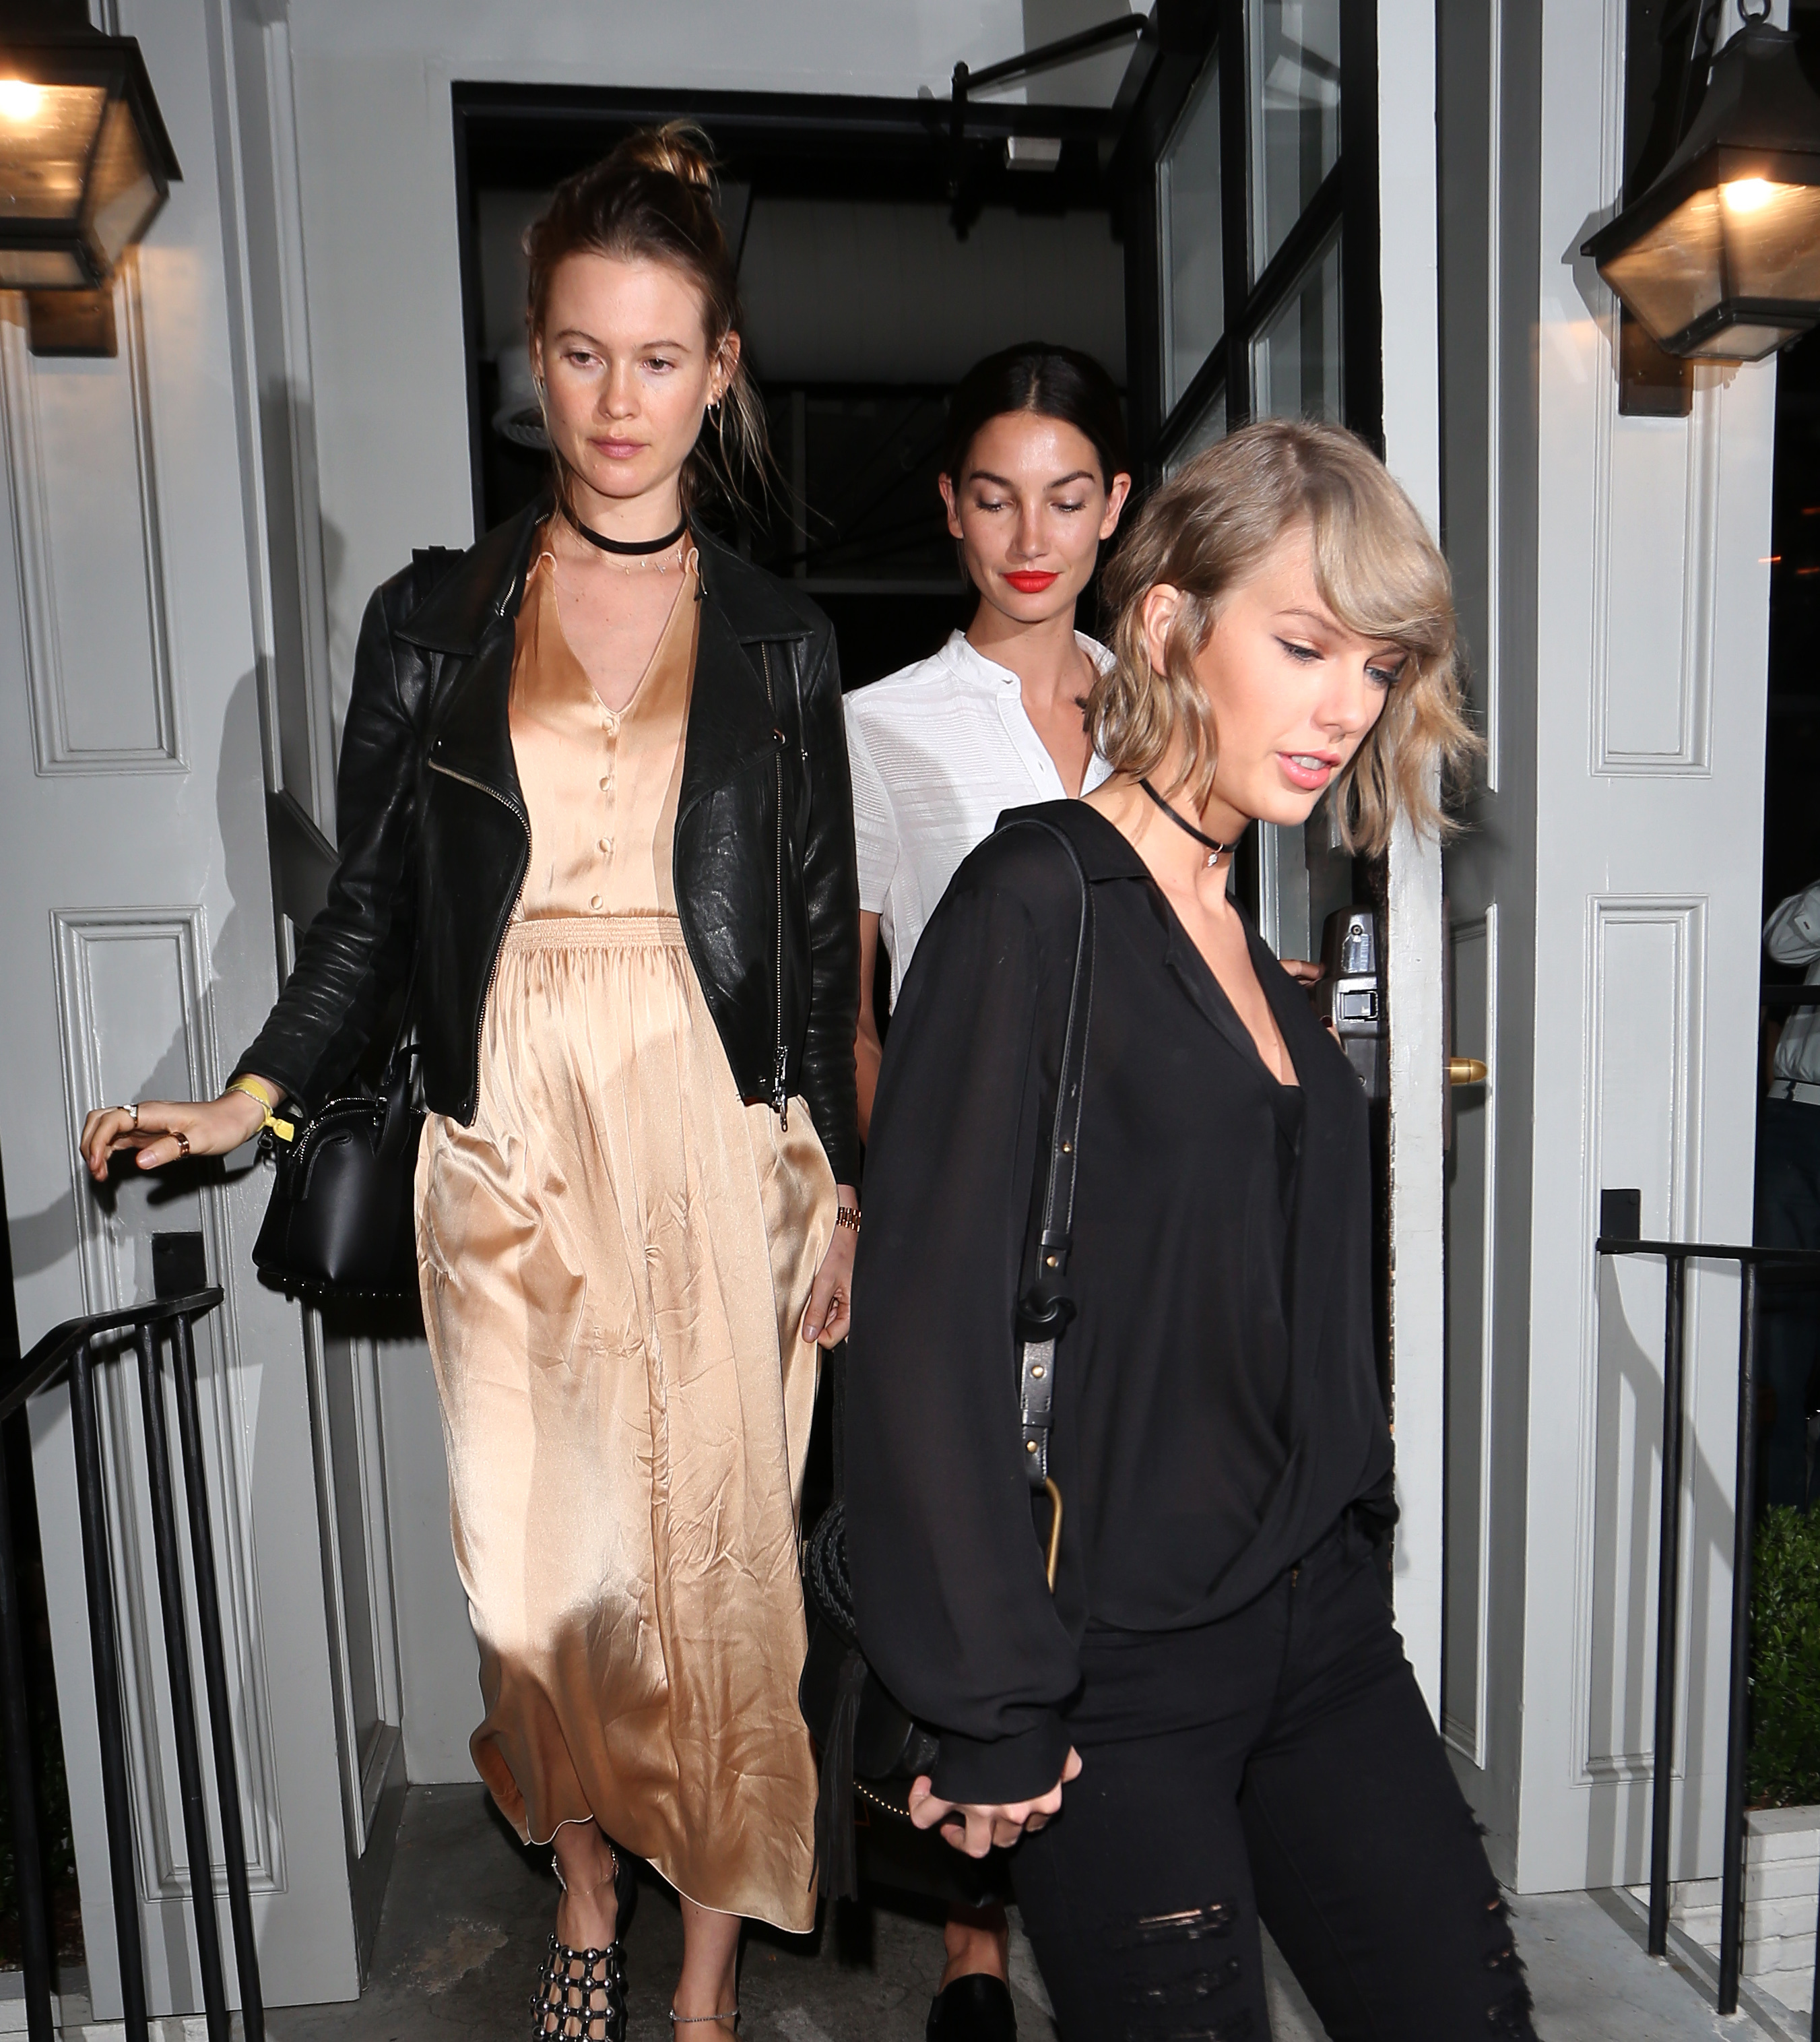 Taylor Swift steps out with pregnant squad member Behati Prinsloo